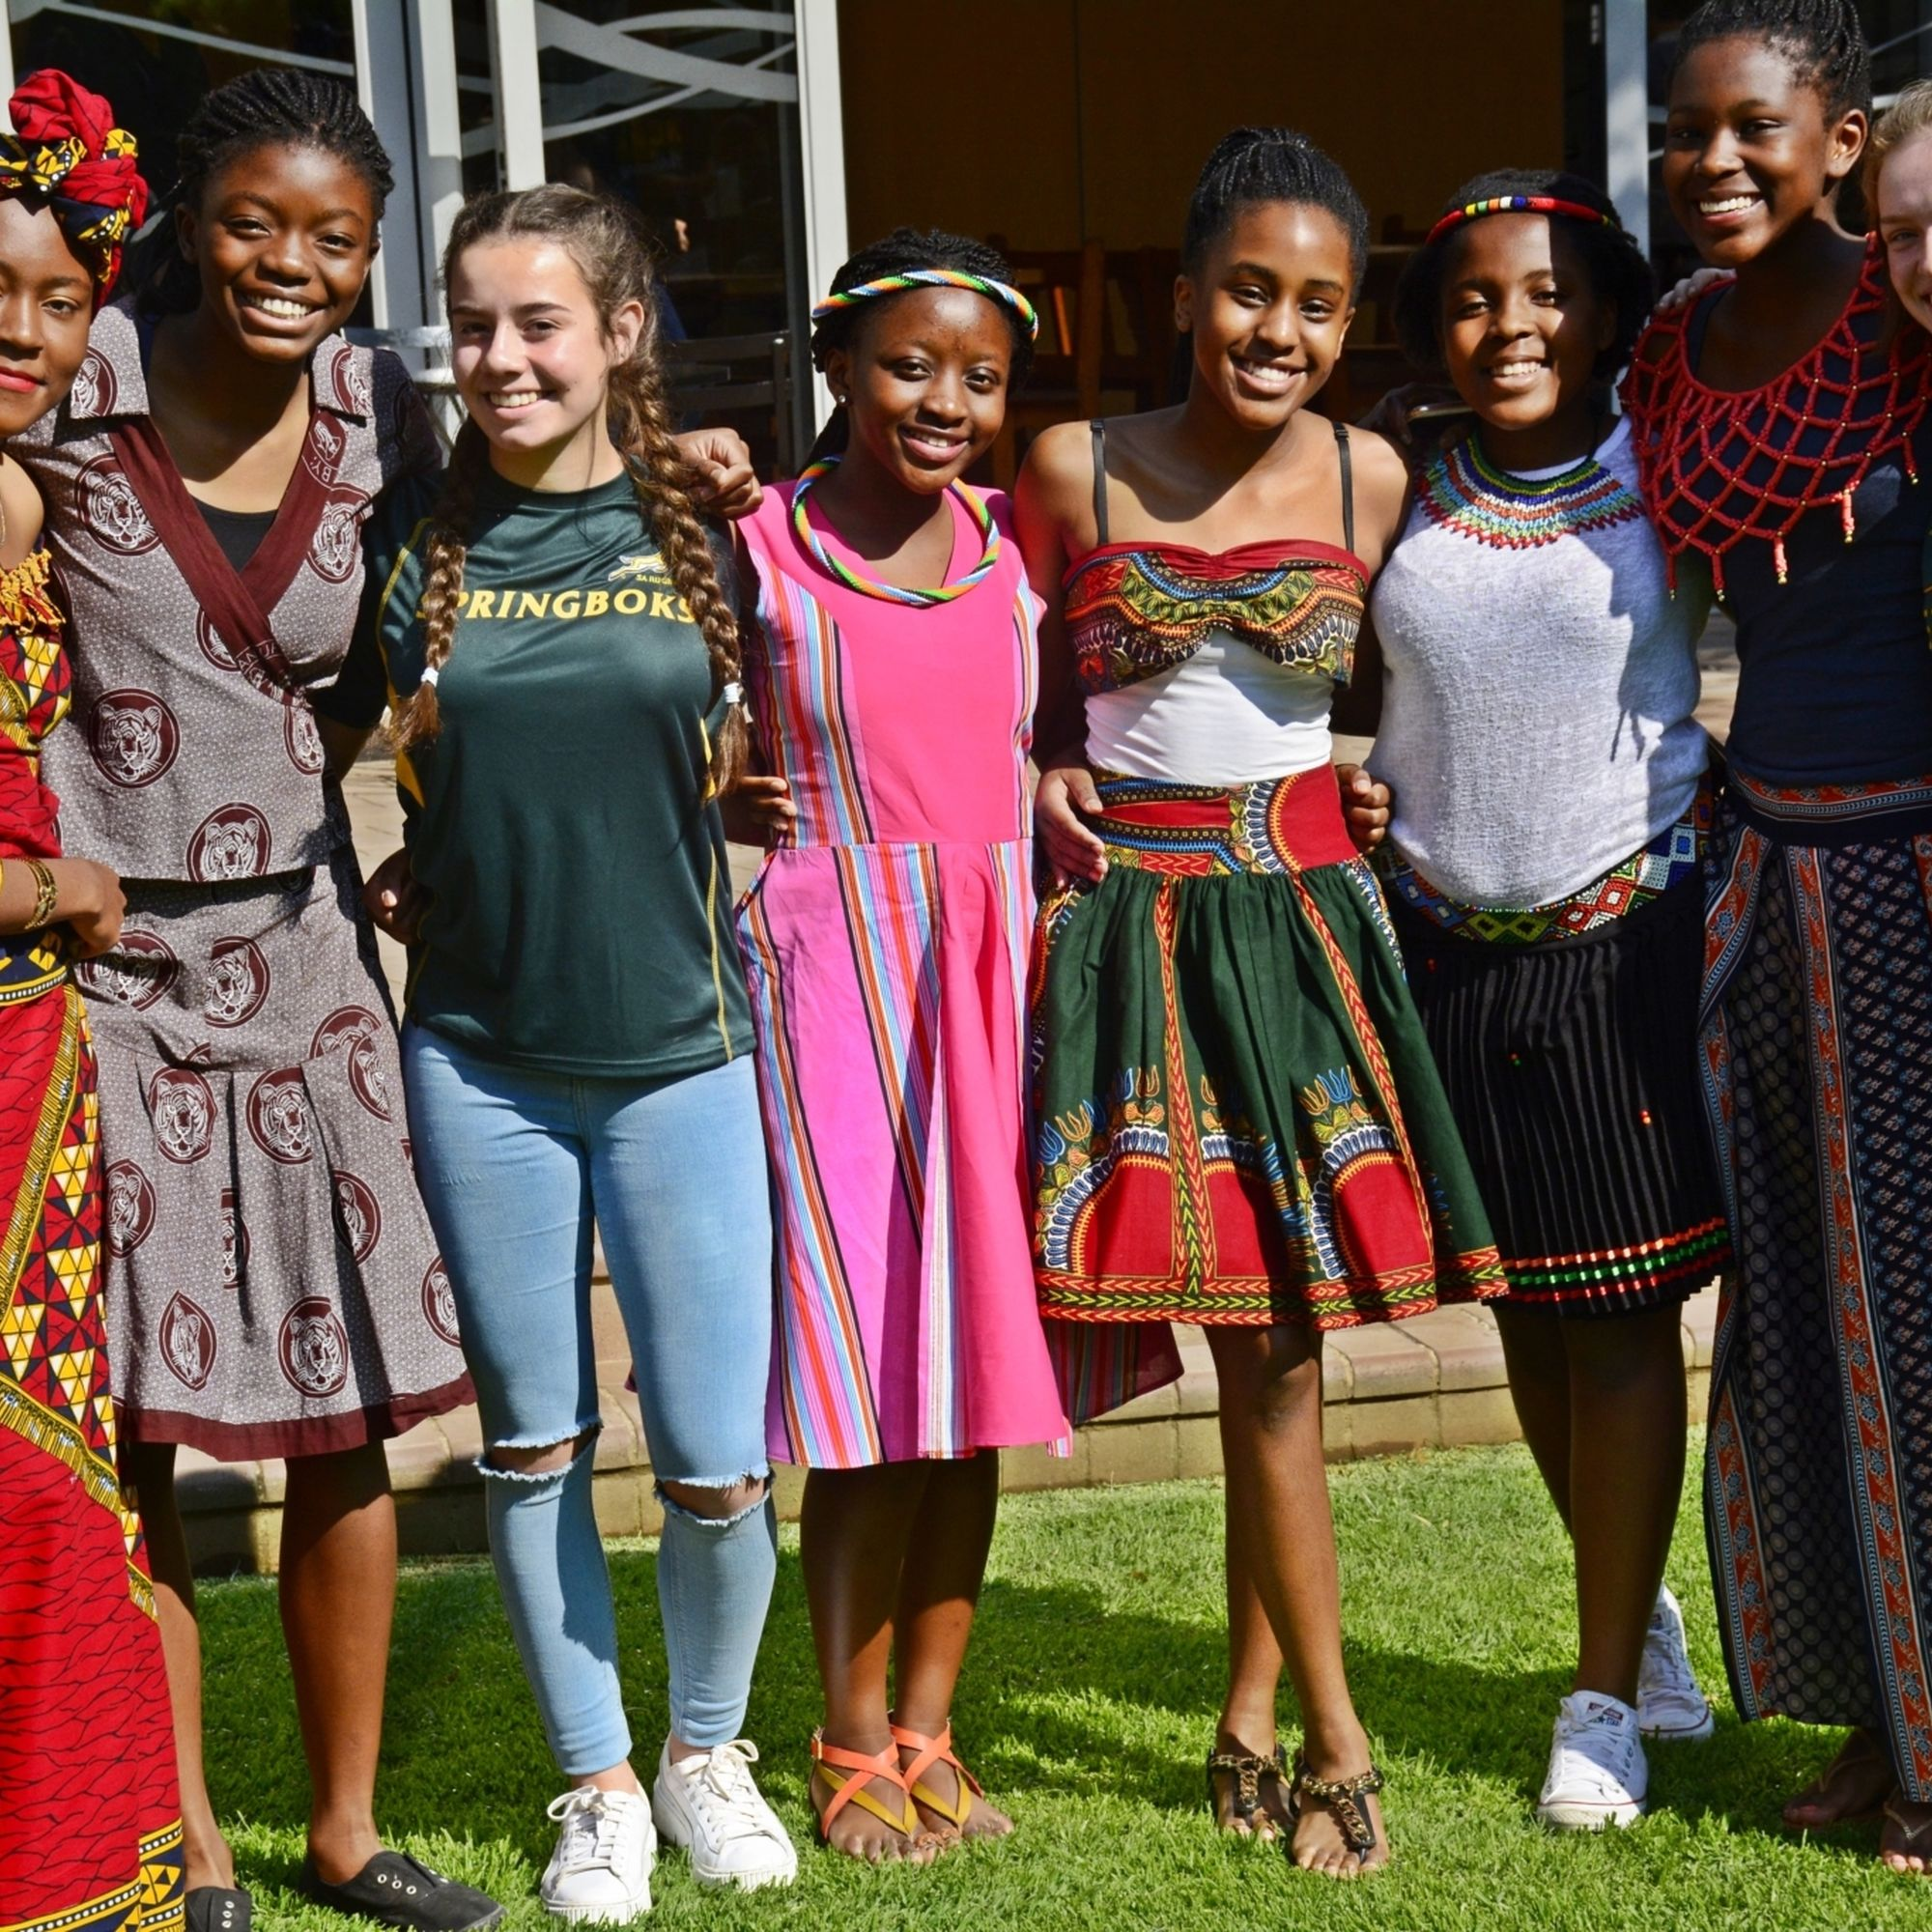 Senior school girls celebrating our diverse community